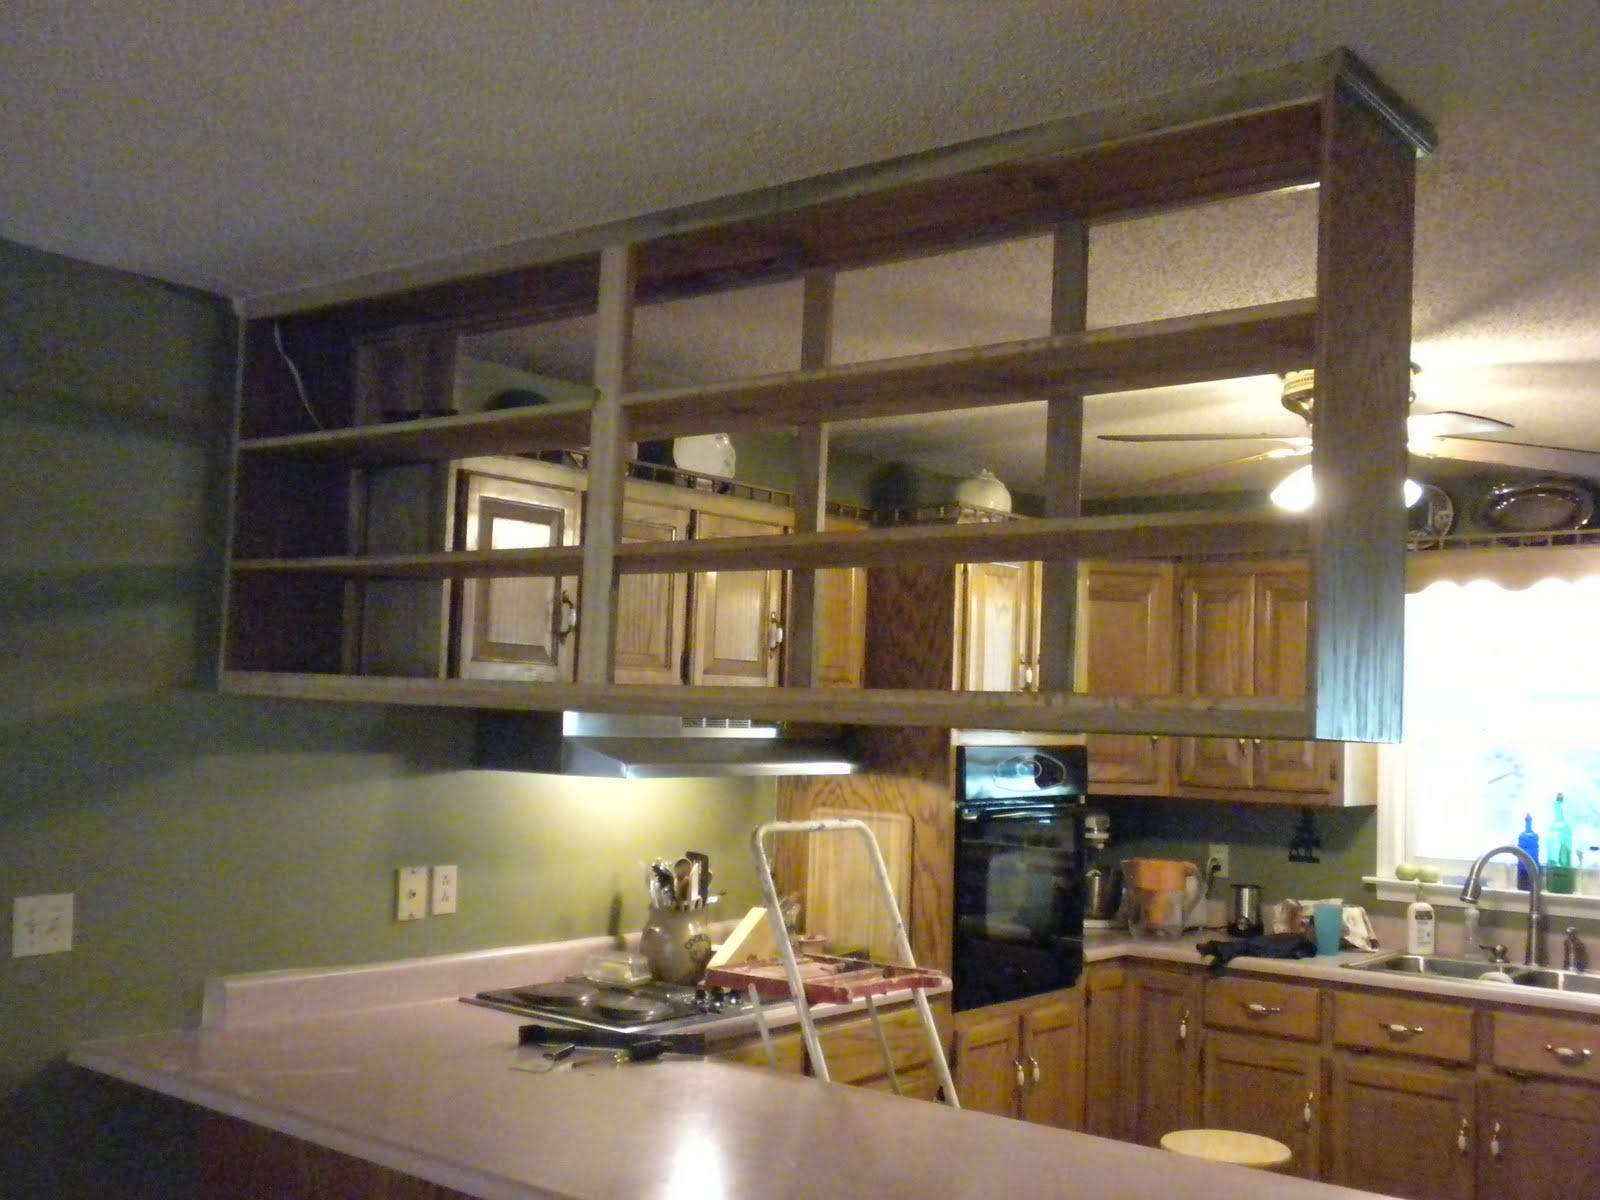 Single Upper Kitchen Cabinet a meek perspective: before & after: upper kitchen cabinet